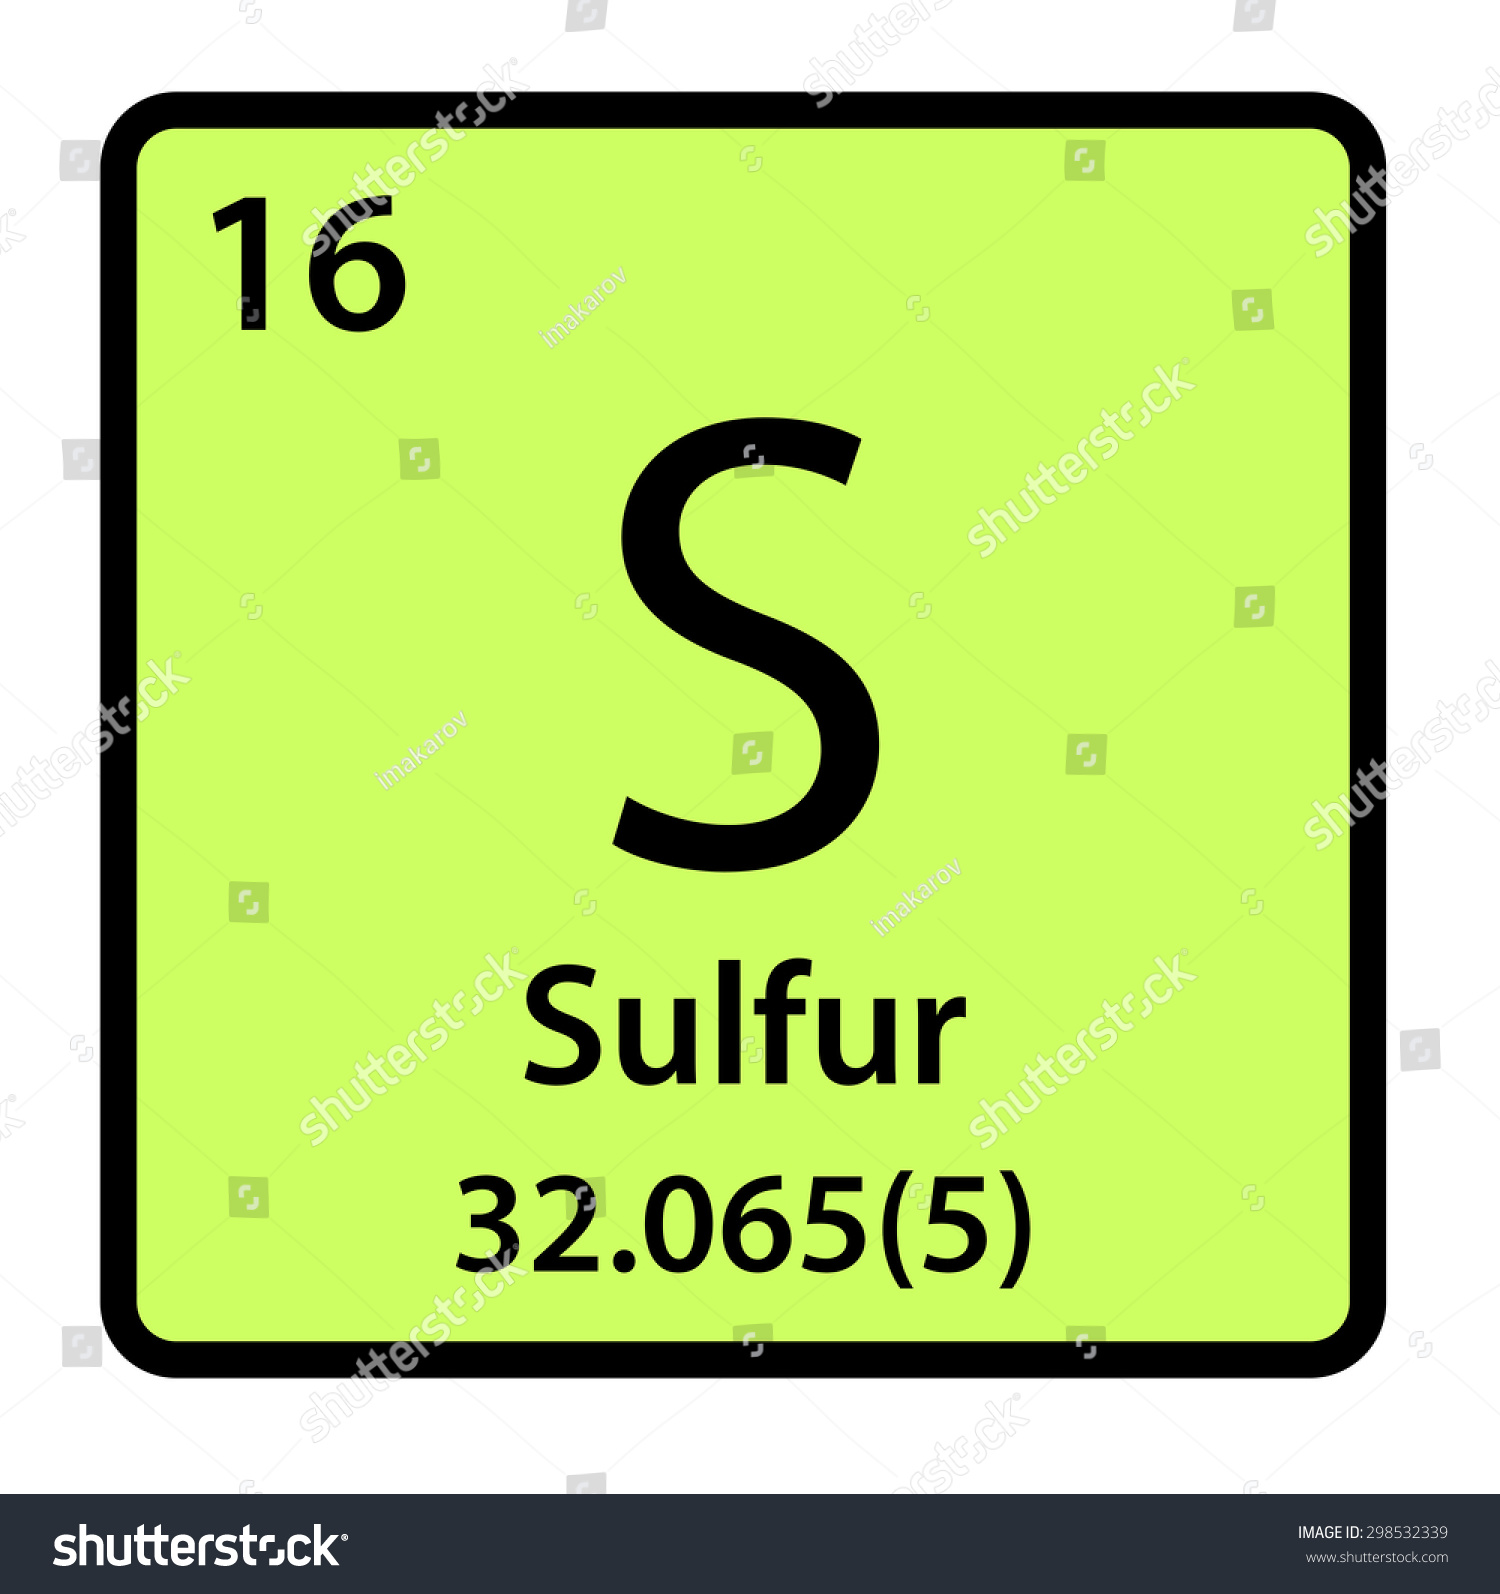 Element sulfur periodic table stock illustration 298532339 element sulfur of the periodic table buycottarizona Image collections